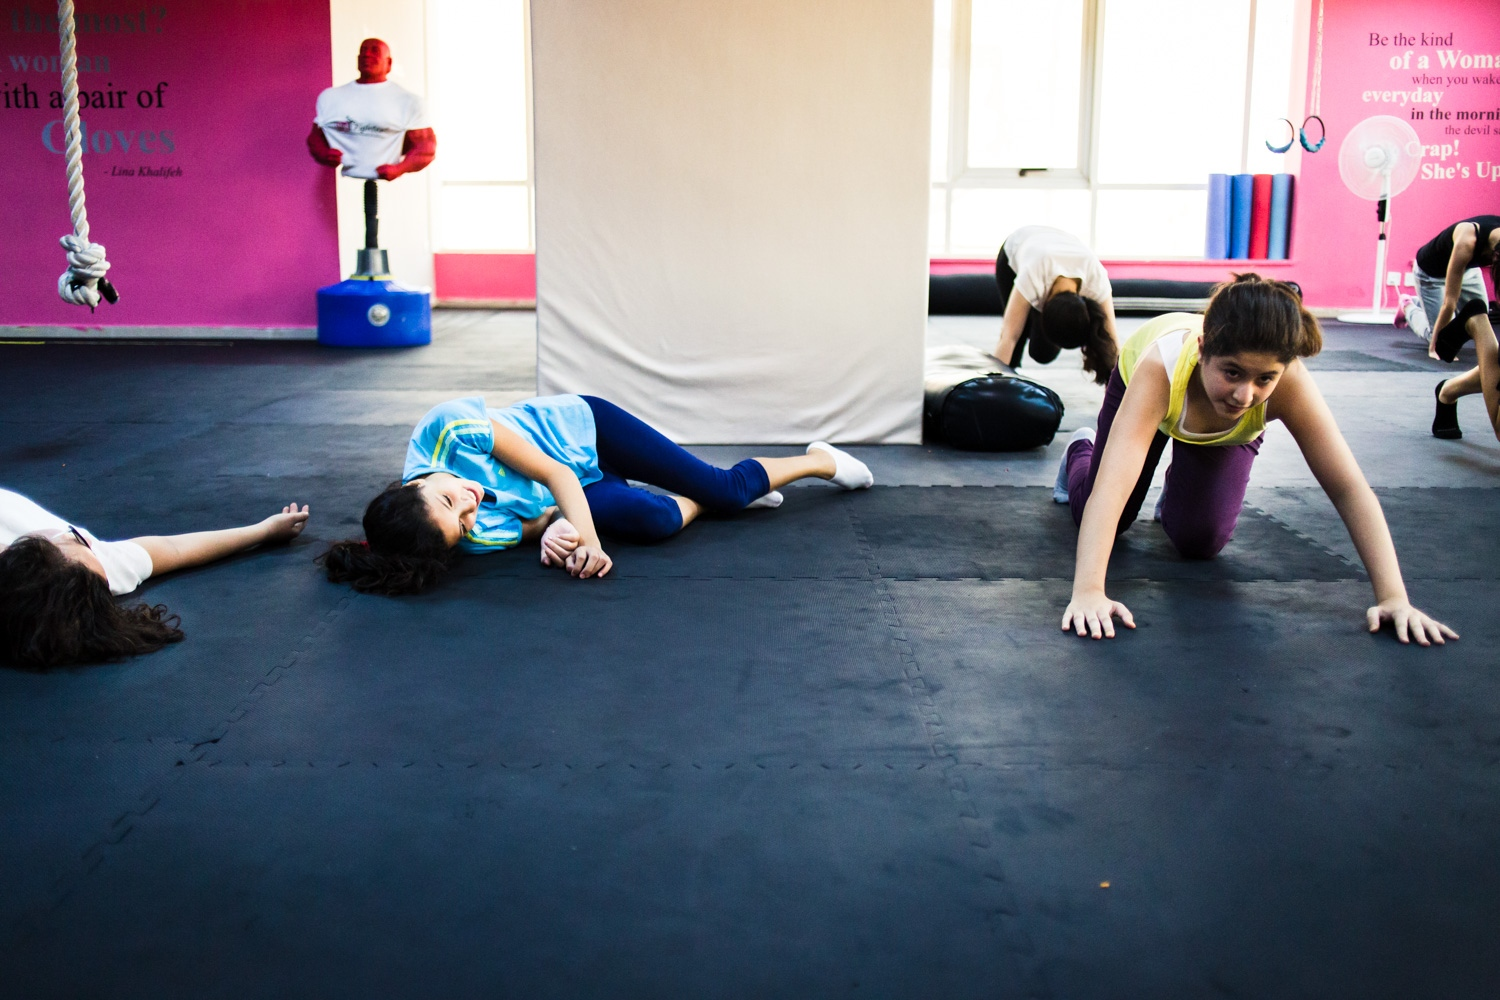 Reem Habib collapses on the floor, laughing, after holding the plank position during a self defense class in Amman, Jordan, on August 21, 2015. The She Fighter studio was founded by Lina Khalifeh, and offers self defense classes to young women to protect against harrassment.